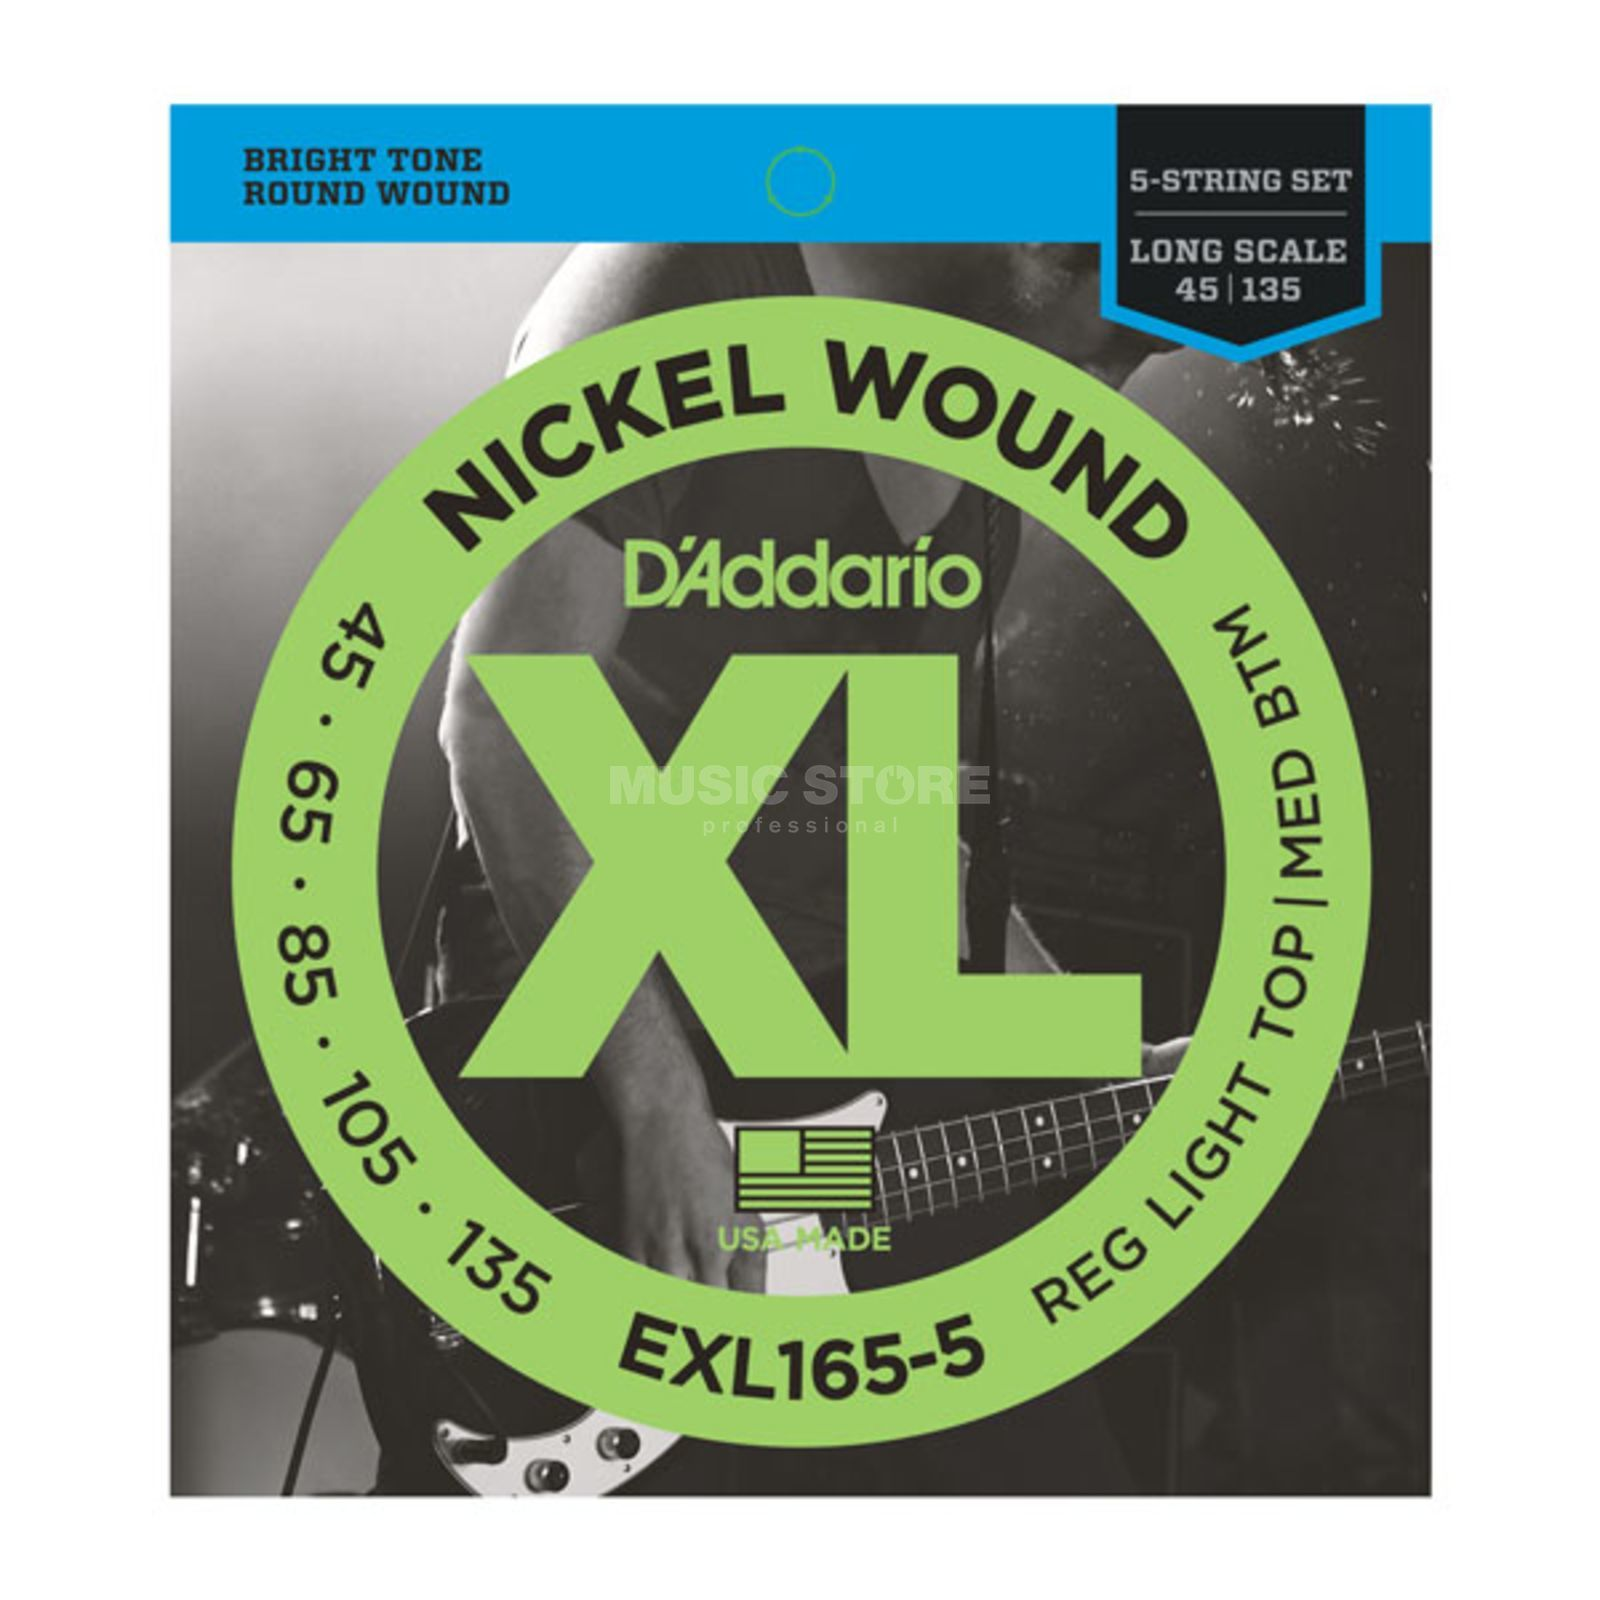 D'Addario Bass Strings XL Nickel 45-135 45-65-85-105-135, EXL165-5 Product Image